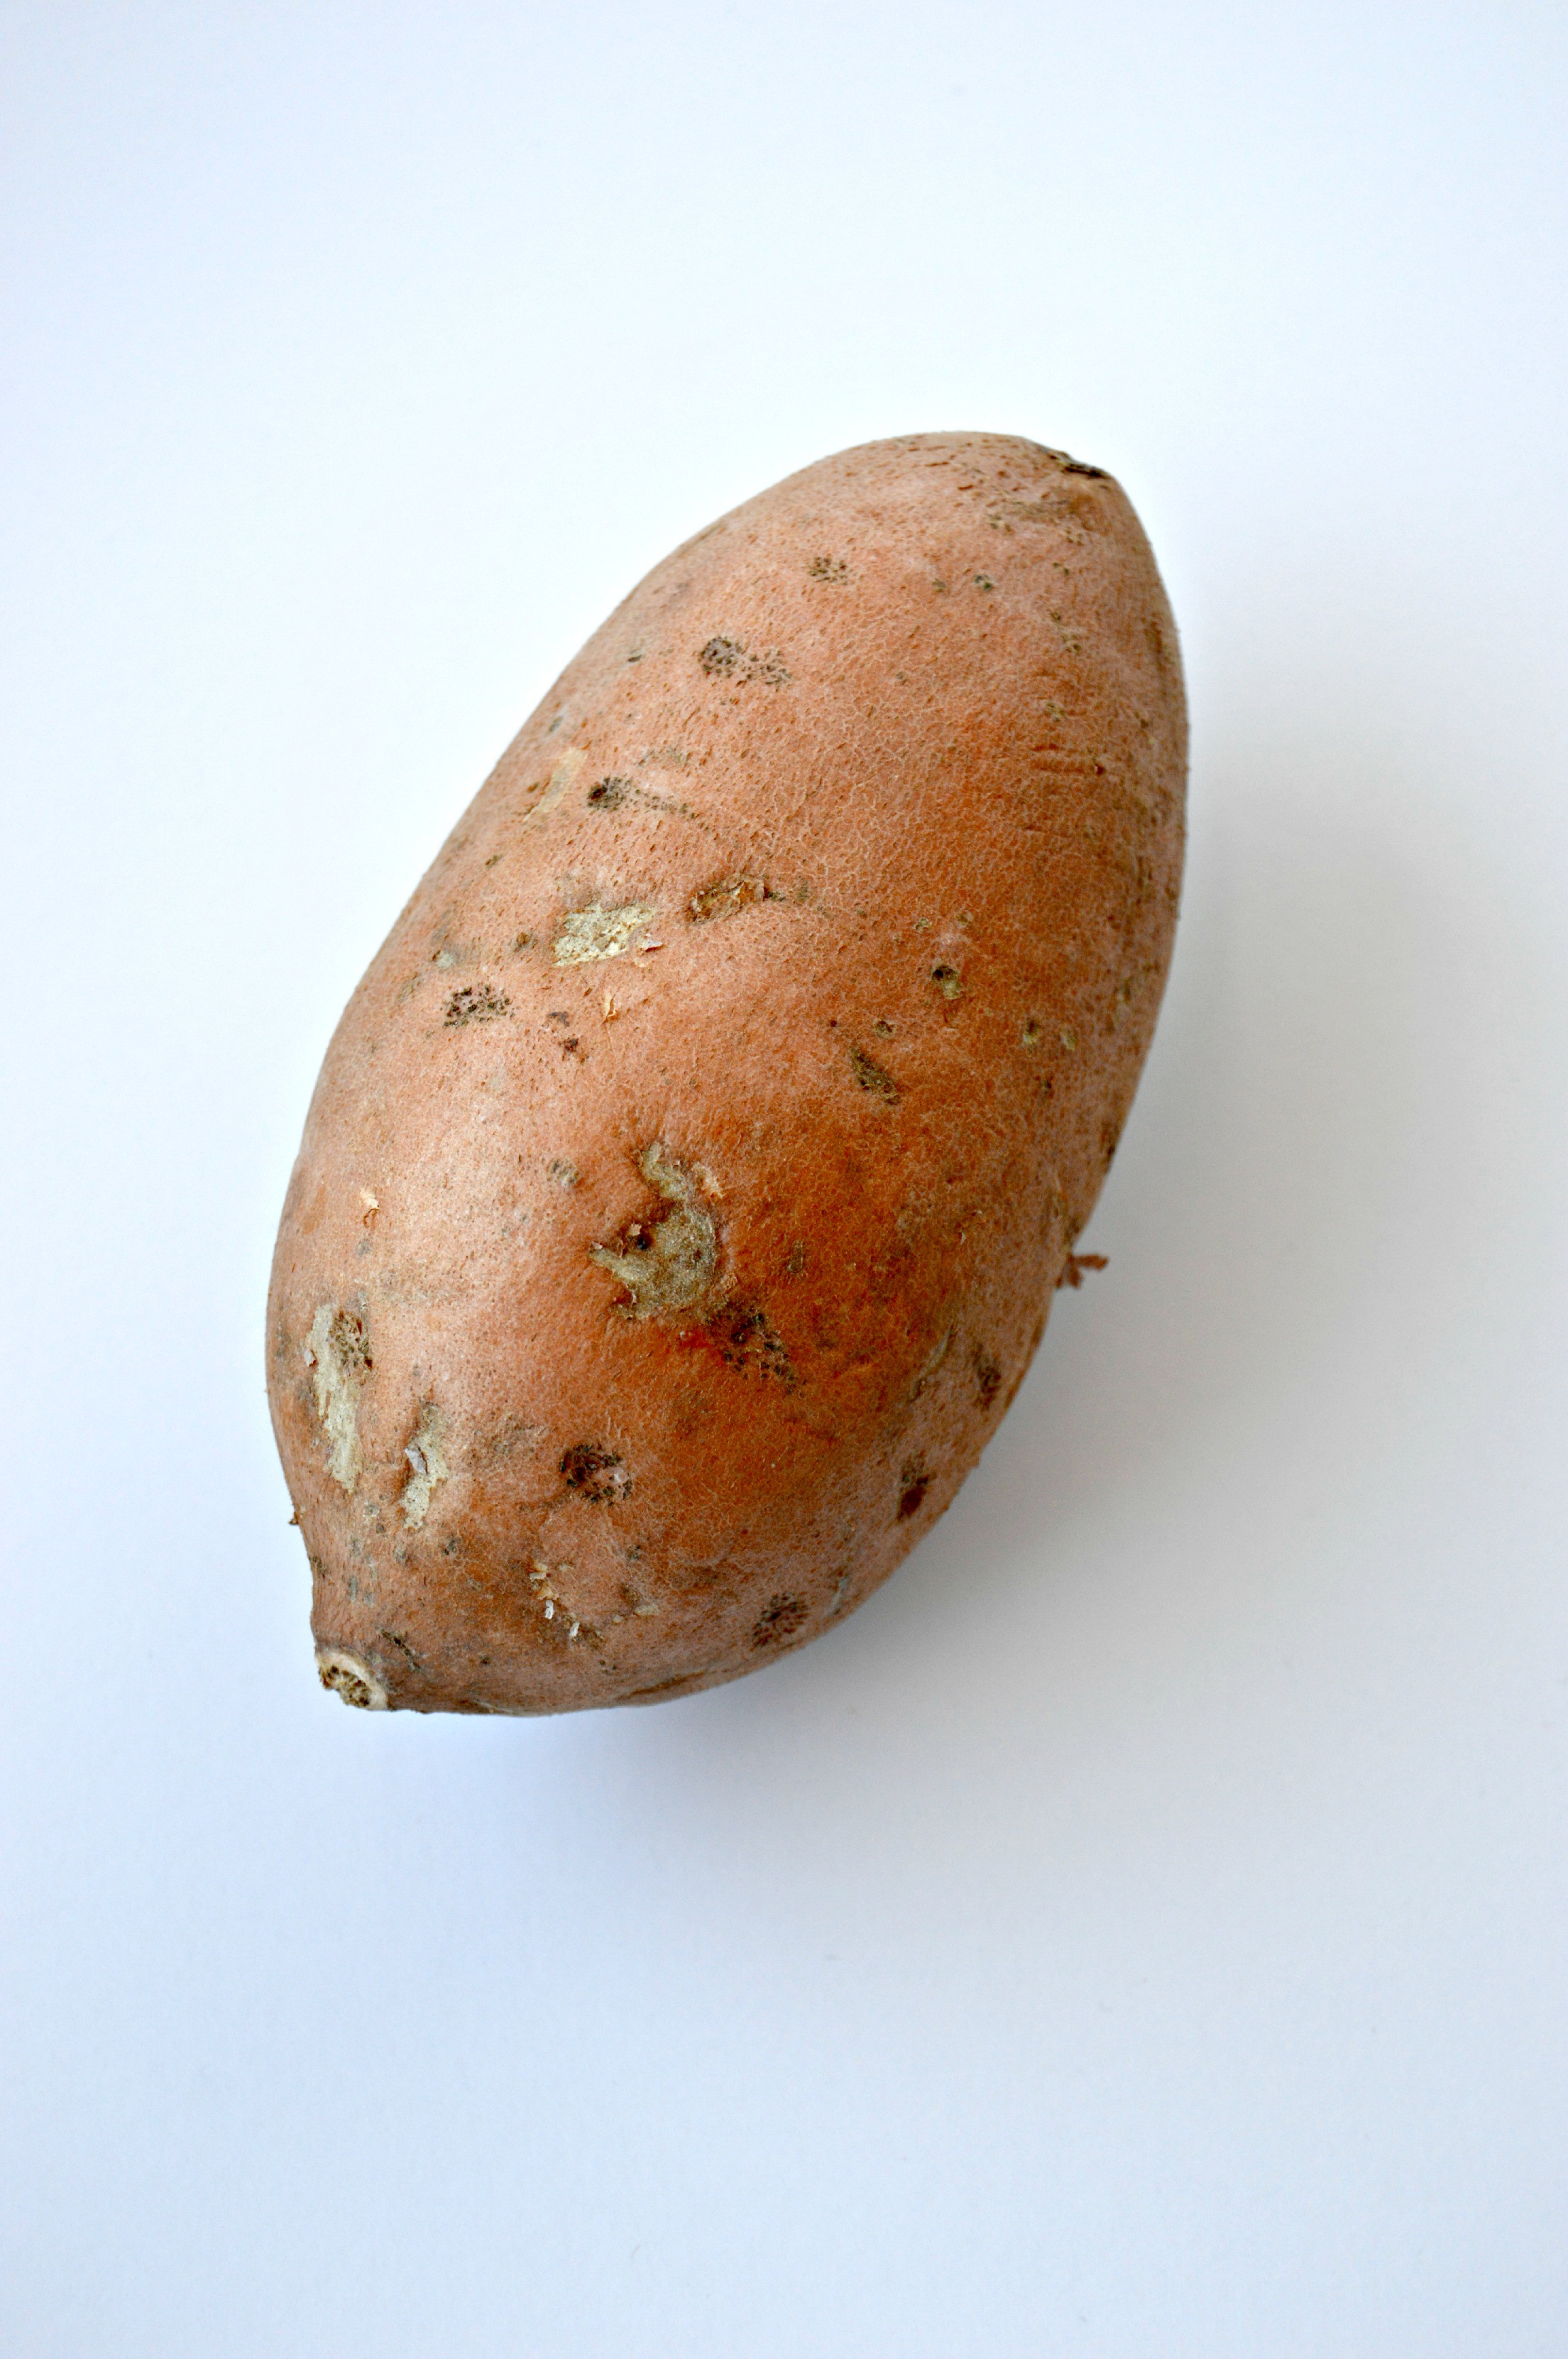 How To Bake A Potato In A Microwave  How to Make a Baked Sweet Potato in the Microwave Clean